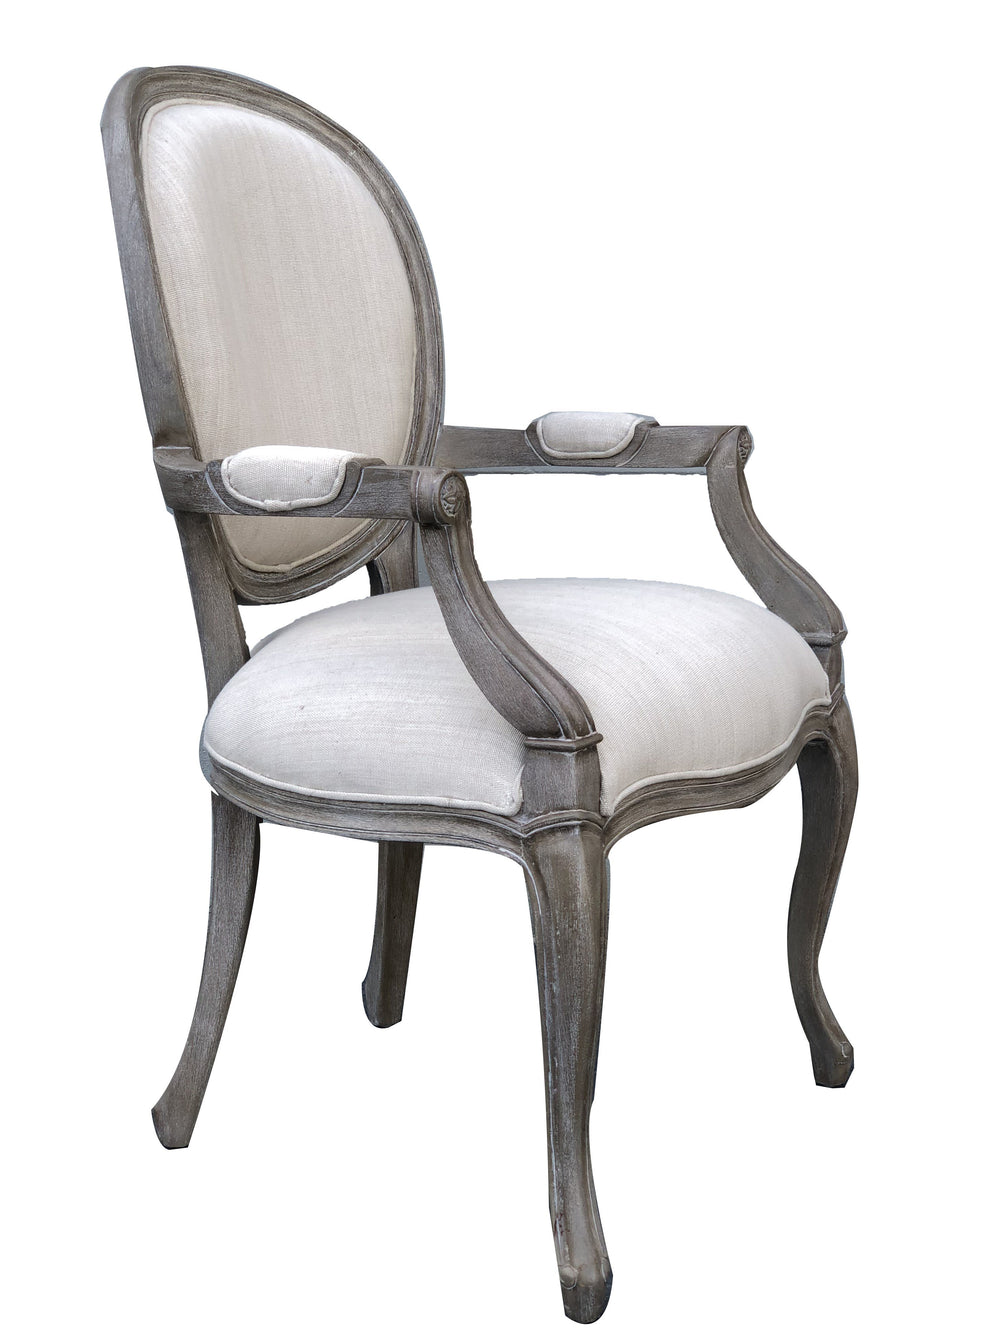 AFD Mystique Mahogany Casual Dining With Arm Chairs AFD Grey